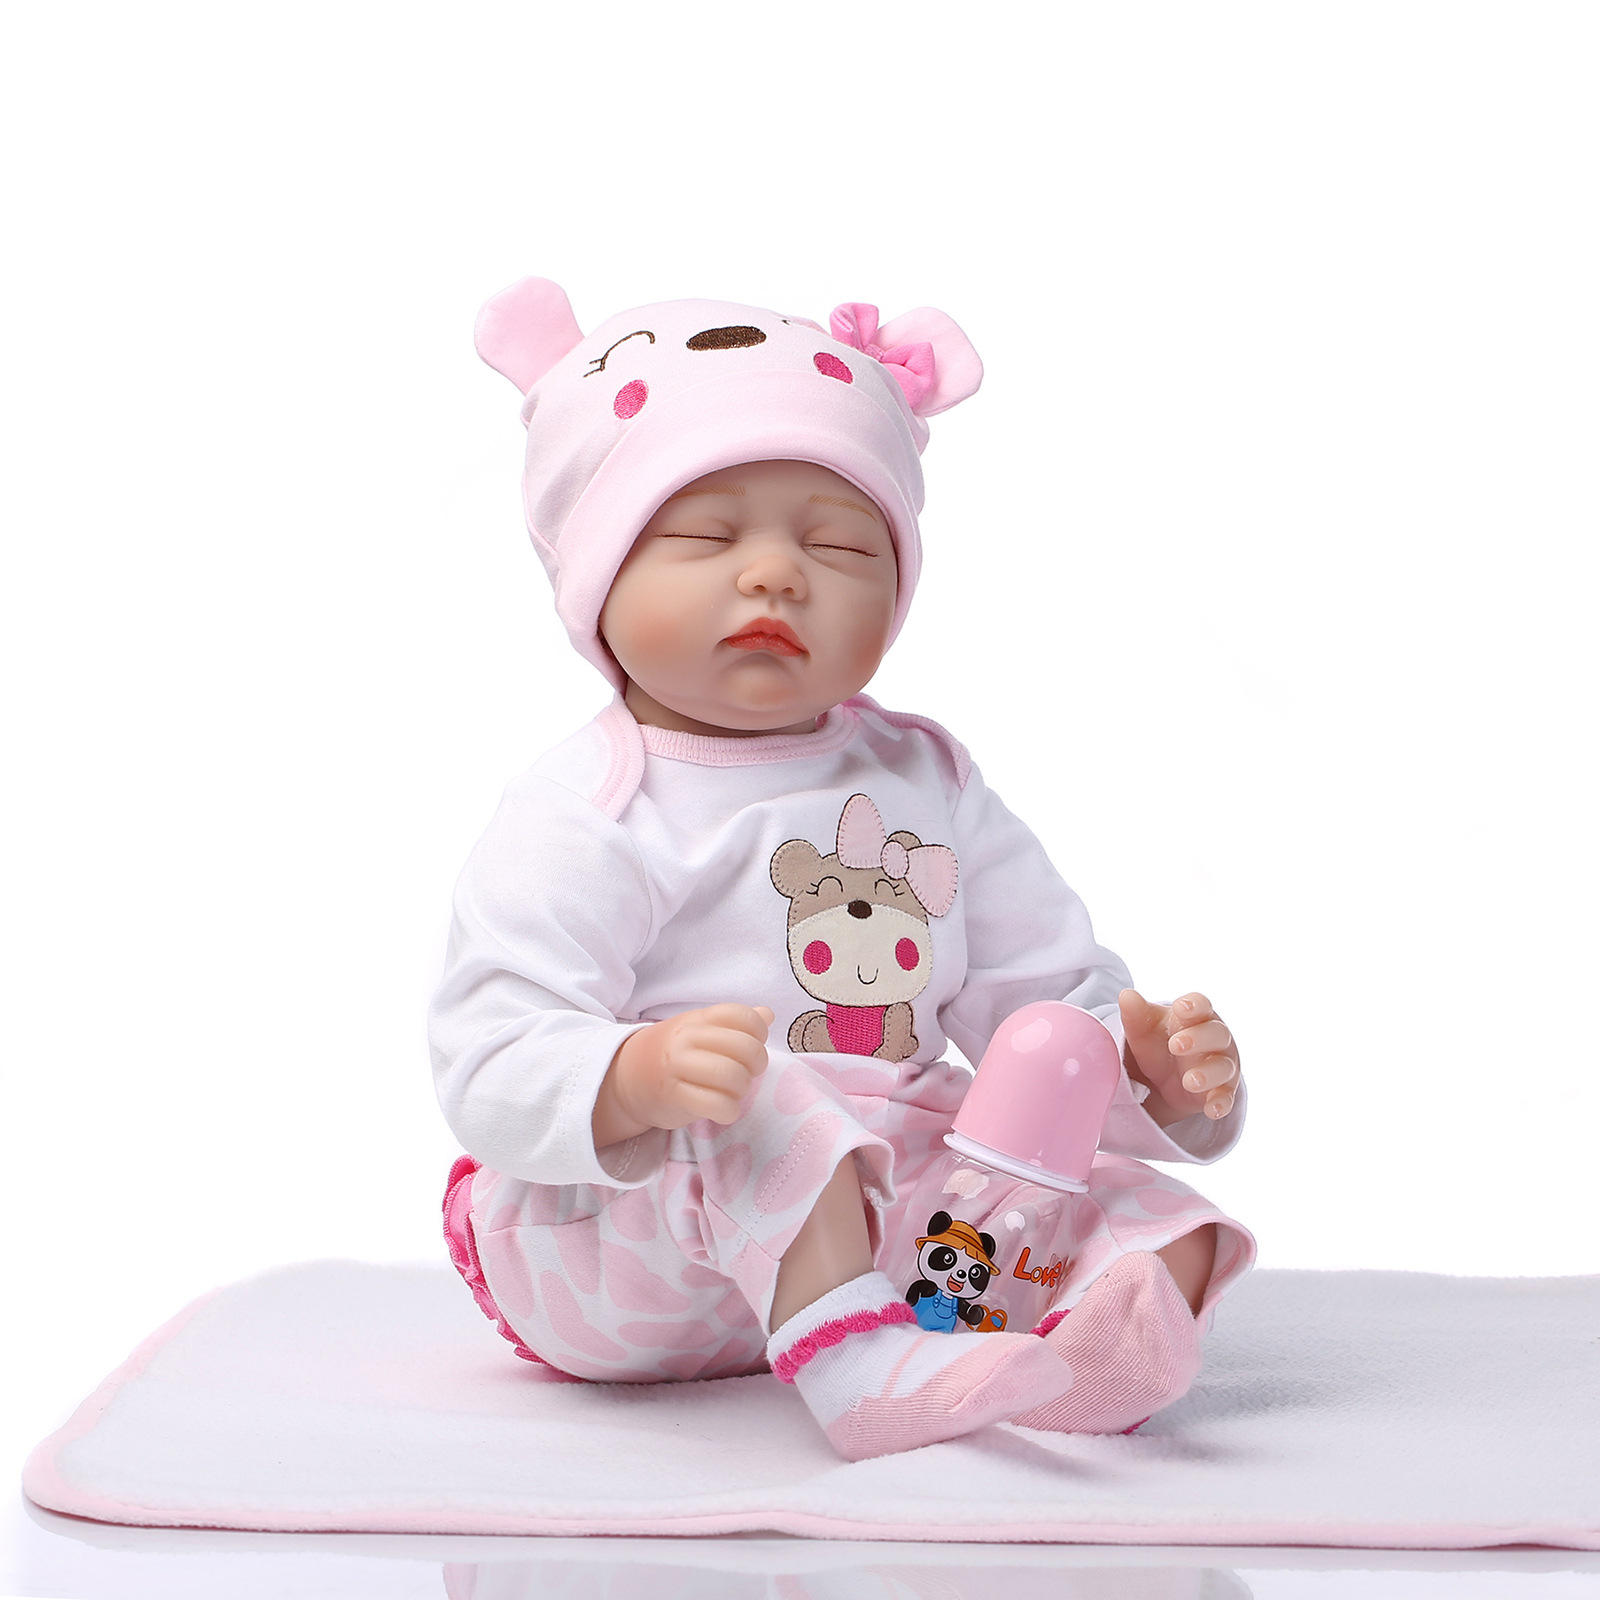 55cm silicone reborn baby doll toys lifelike sleeping newborn girls baby play house girls birthday gifts reborn doll in Dolls from Toys Hobbies